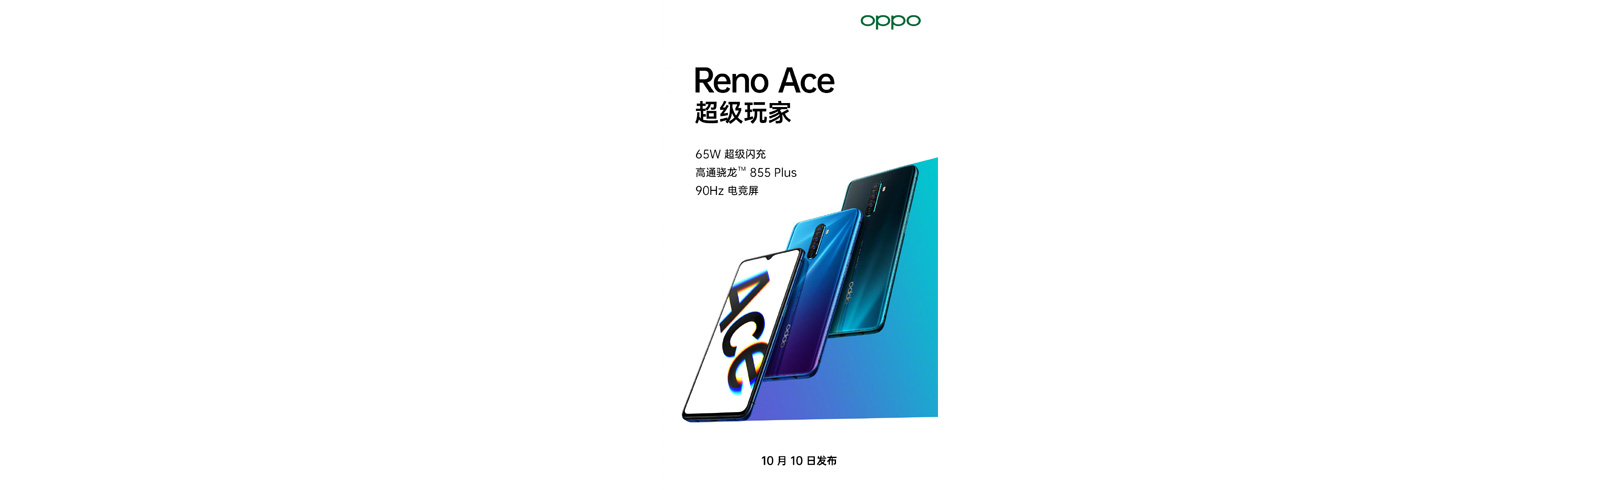 Oppo schedules October 10 announcement for the Reno Ace with 65W SuperVOOC 2.0 charging support